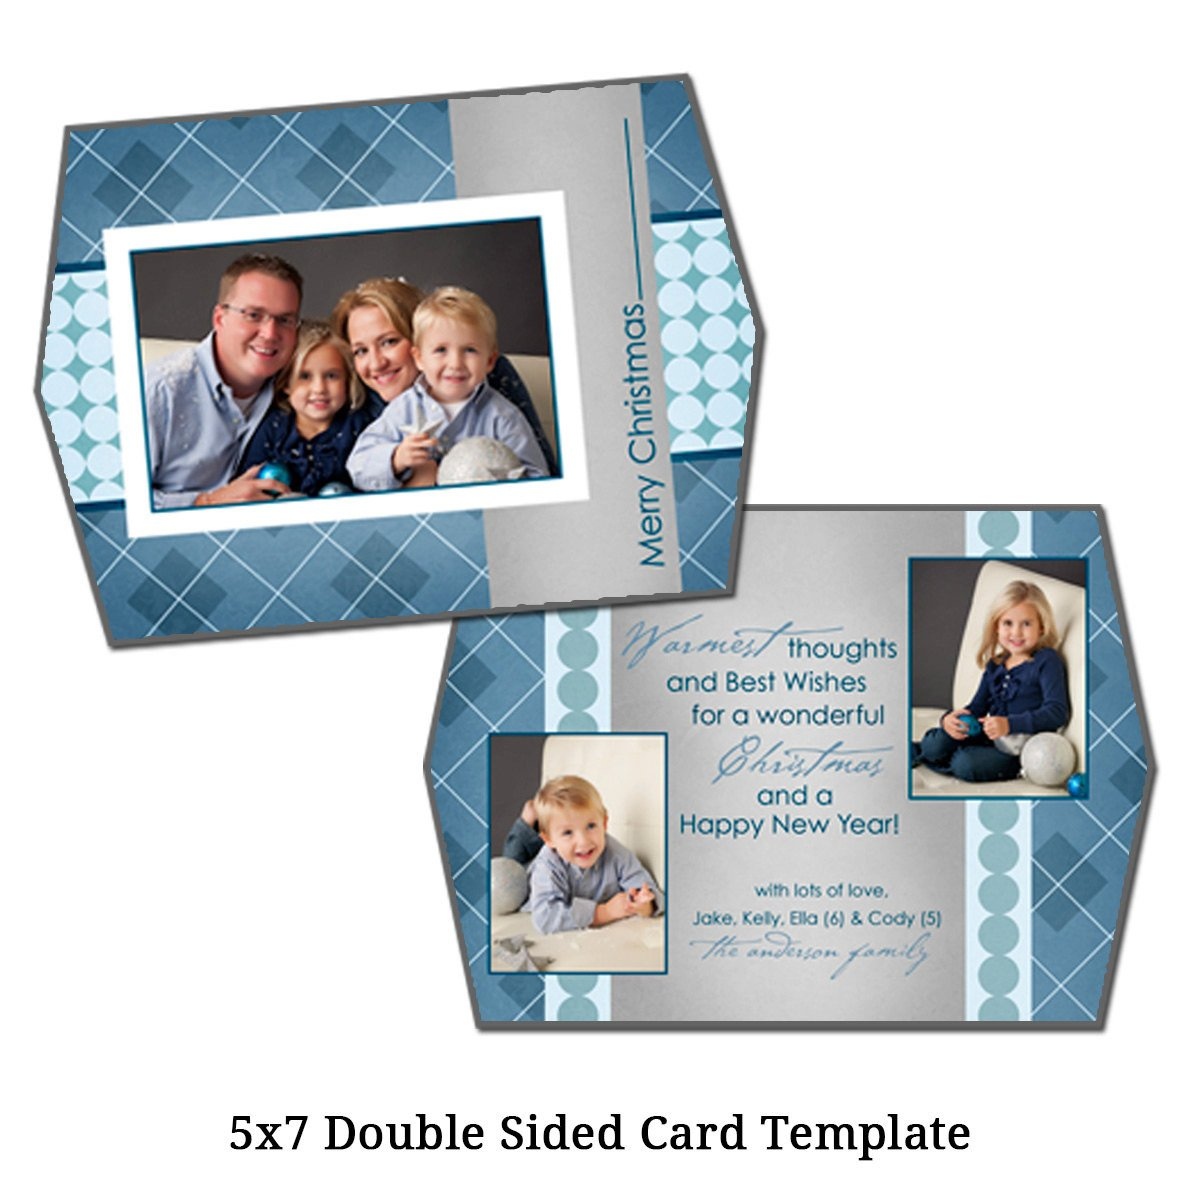 Two Sided Postcard Template 5x7 Double Sided Christmas Card Template by Vgallerydesigns